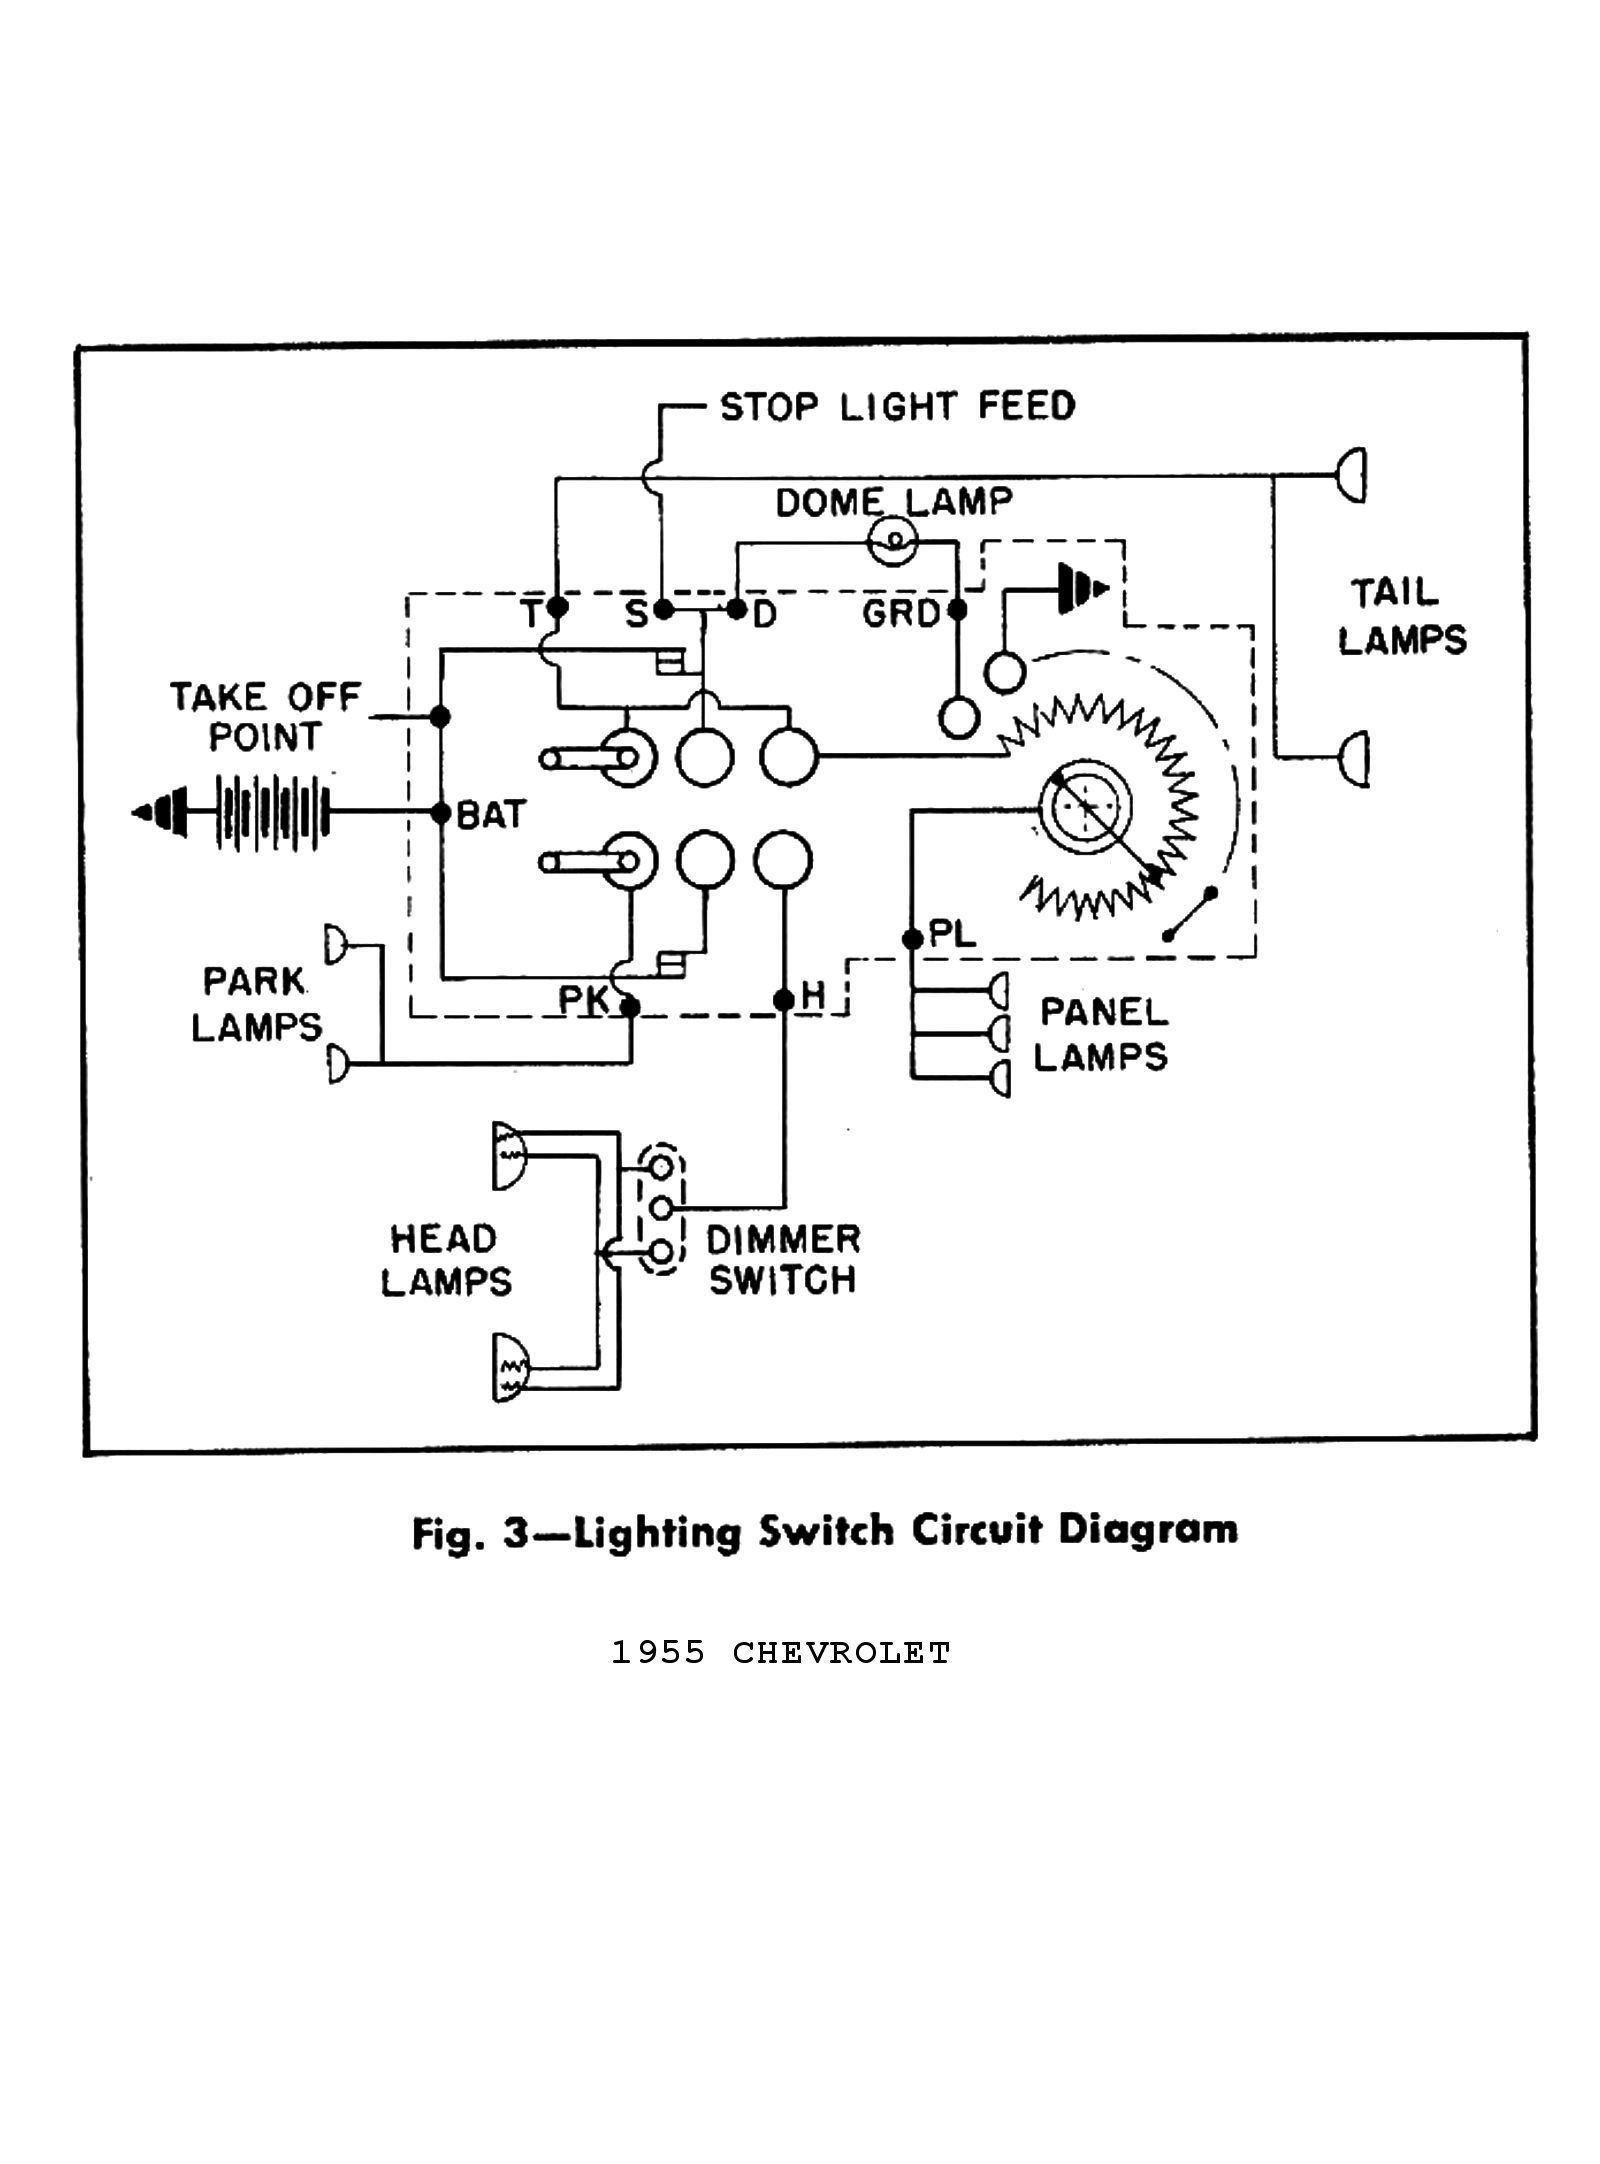 universal ignition switch wiring diagram inspirational 1955 chevy of for 1955 chevy ignition. Black Bedroom Furniture Sets. Home Design Ideas